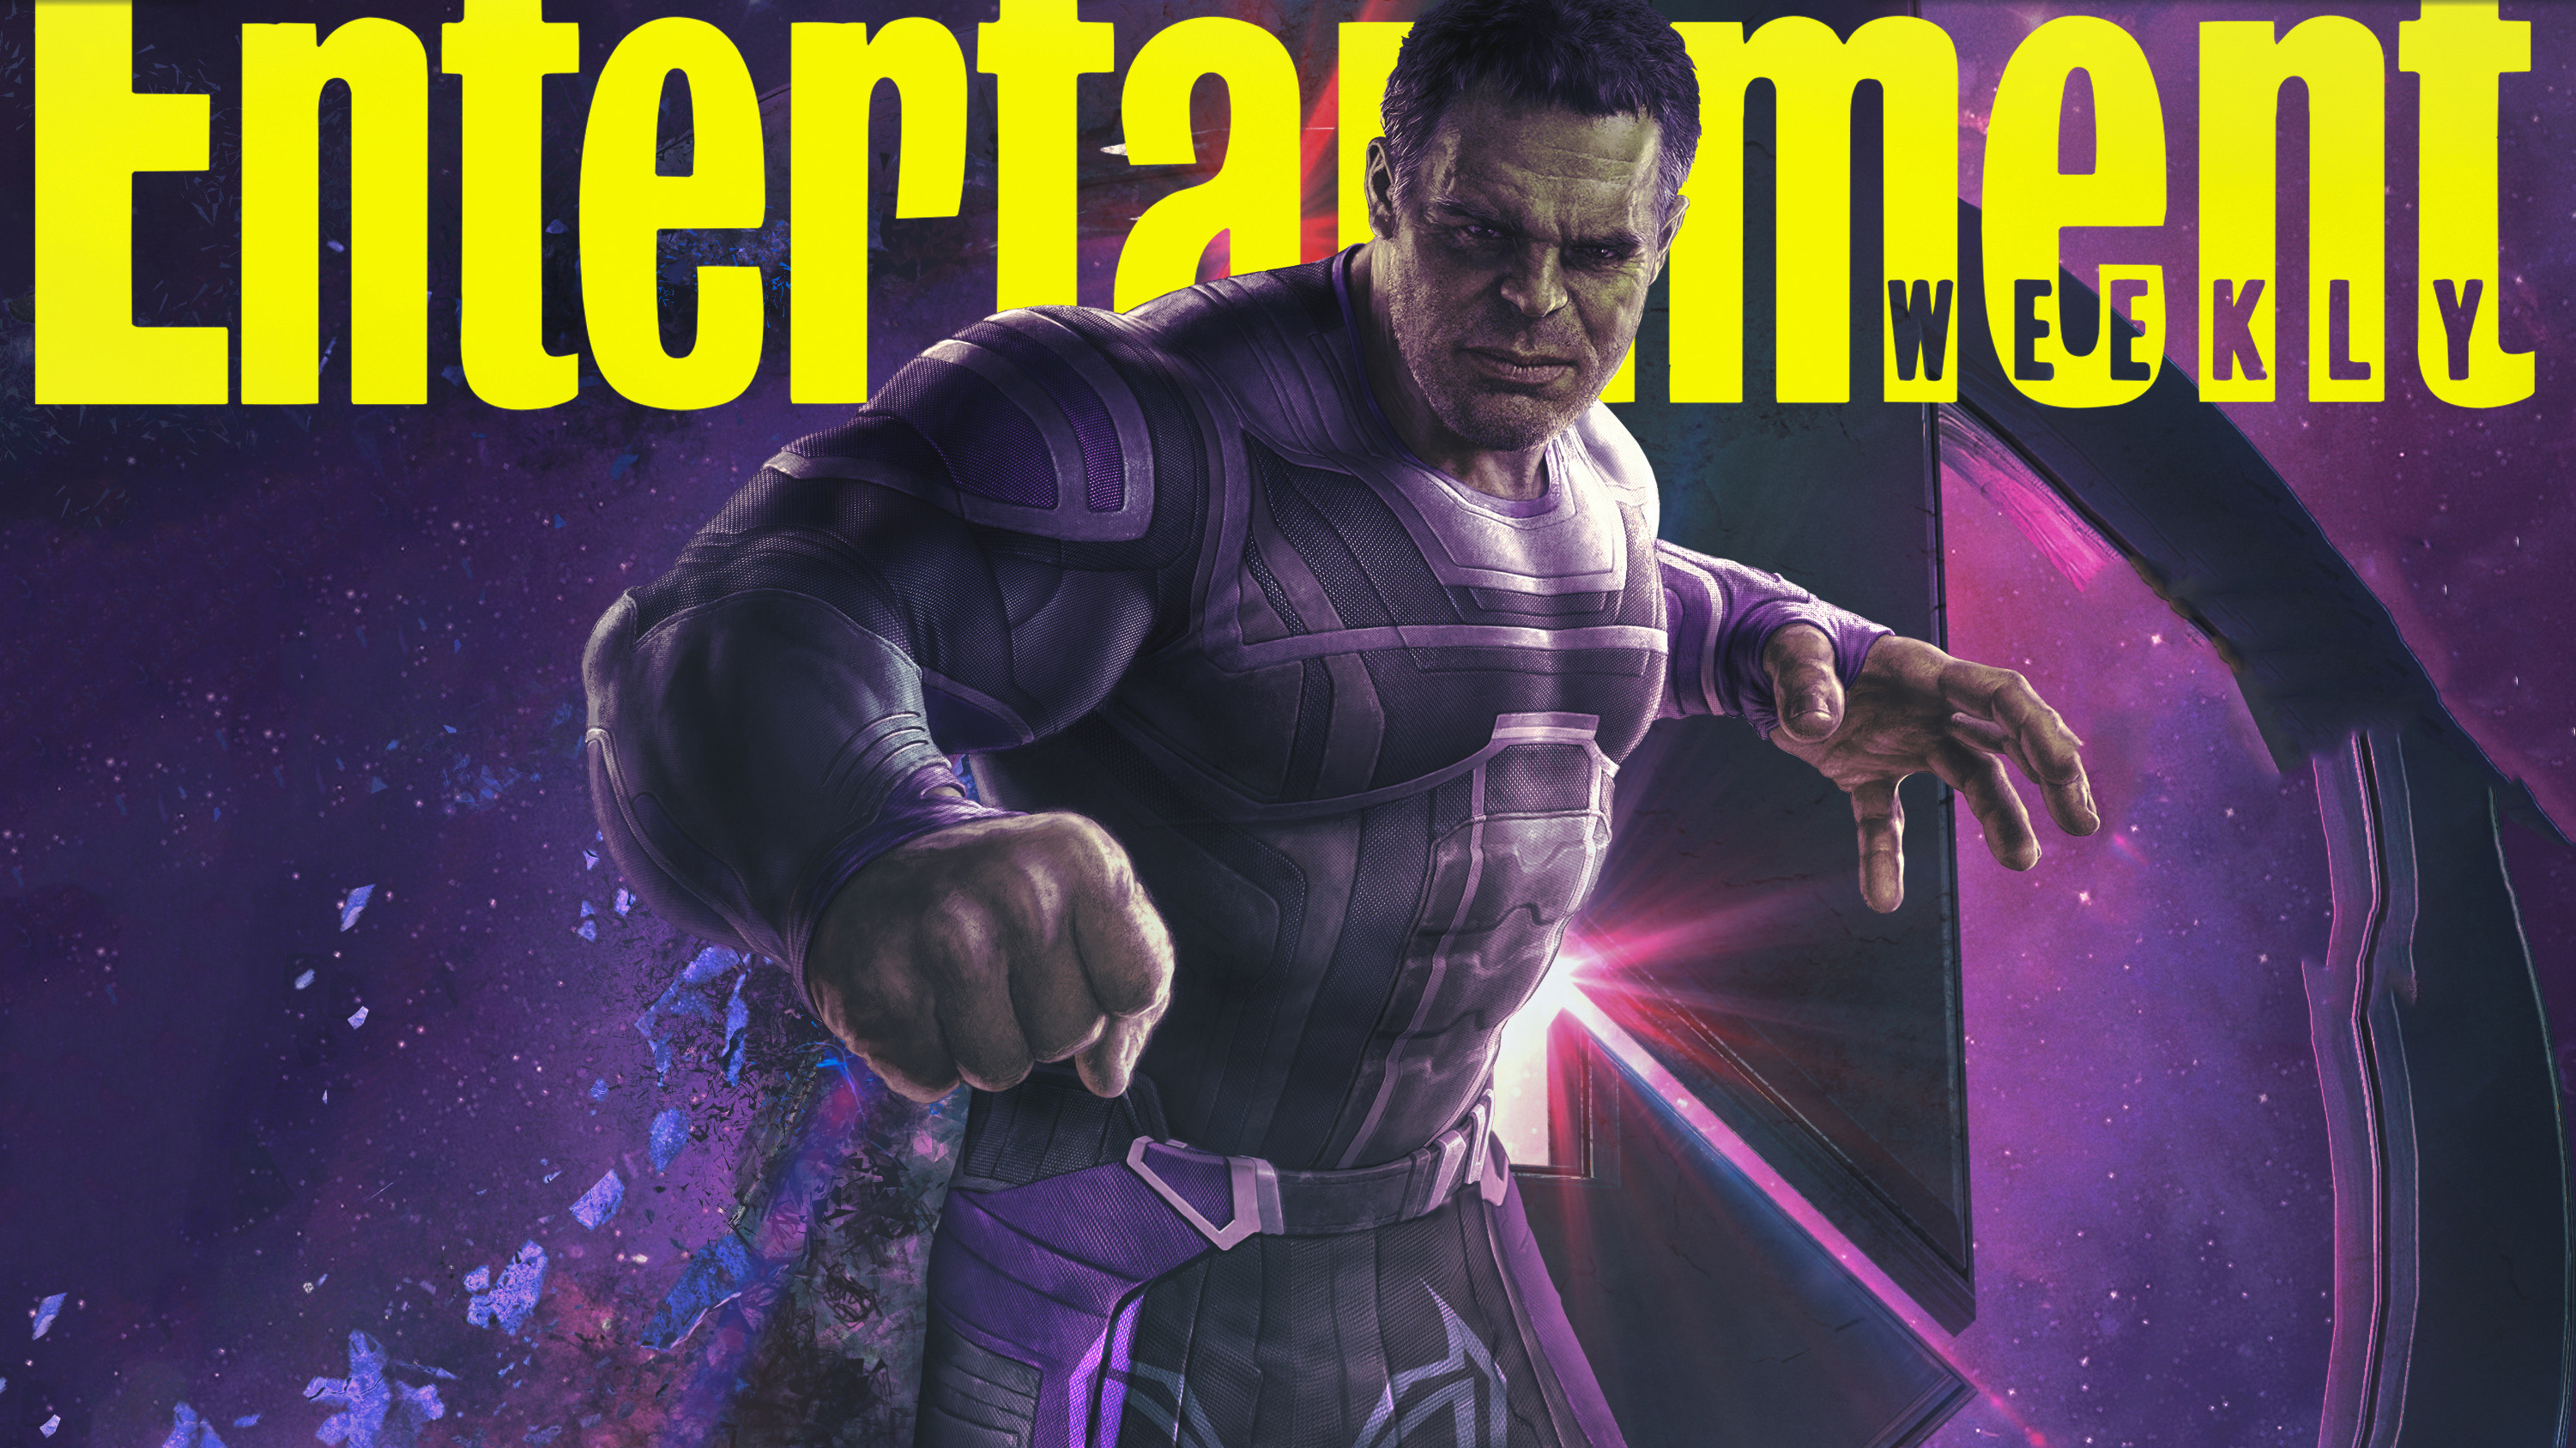 Res: 3002x1688, Hulk In Avengers Endgame 2019 Entertainment Weekly